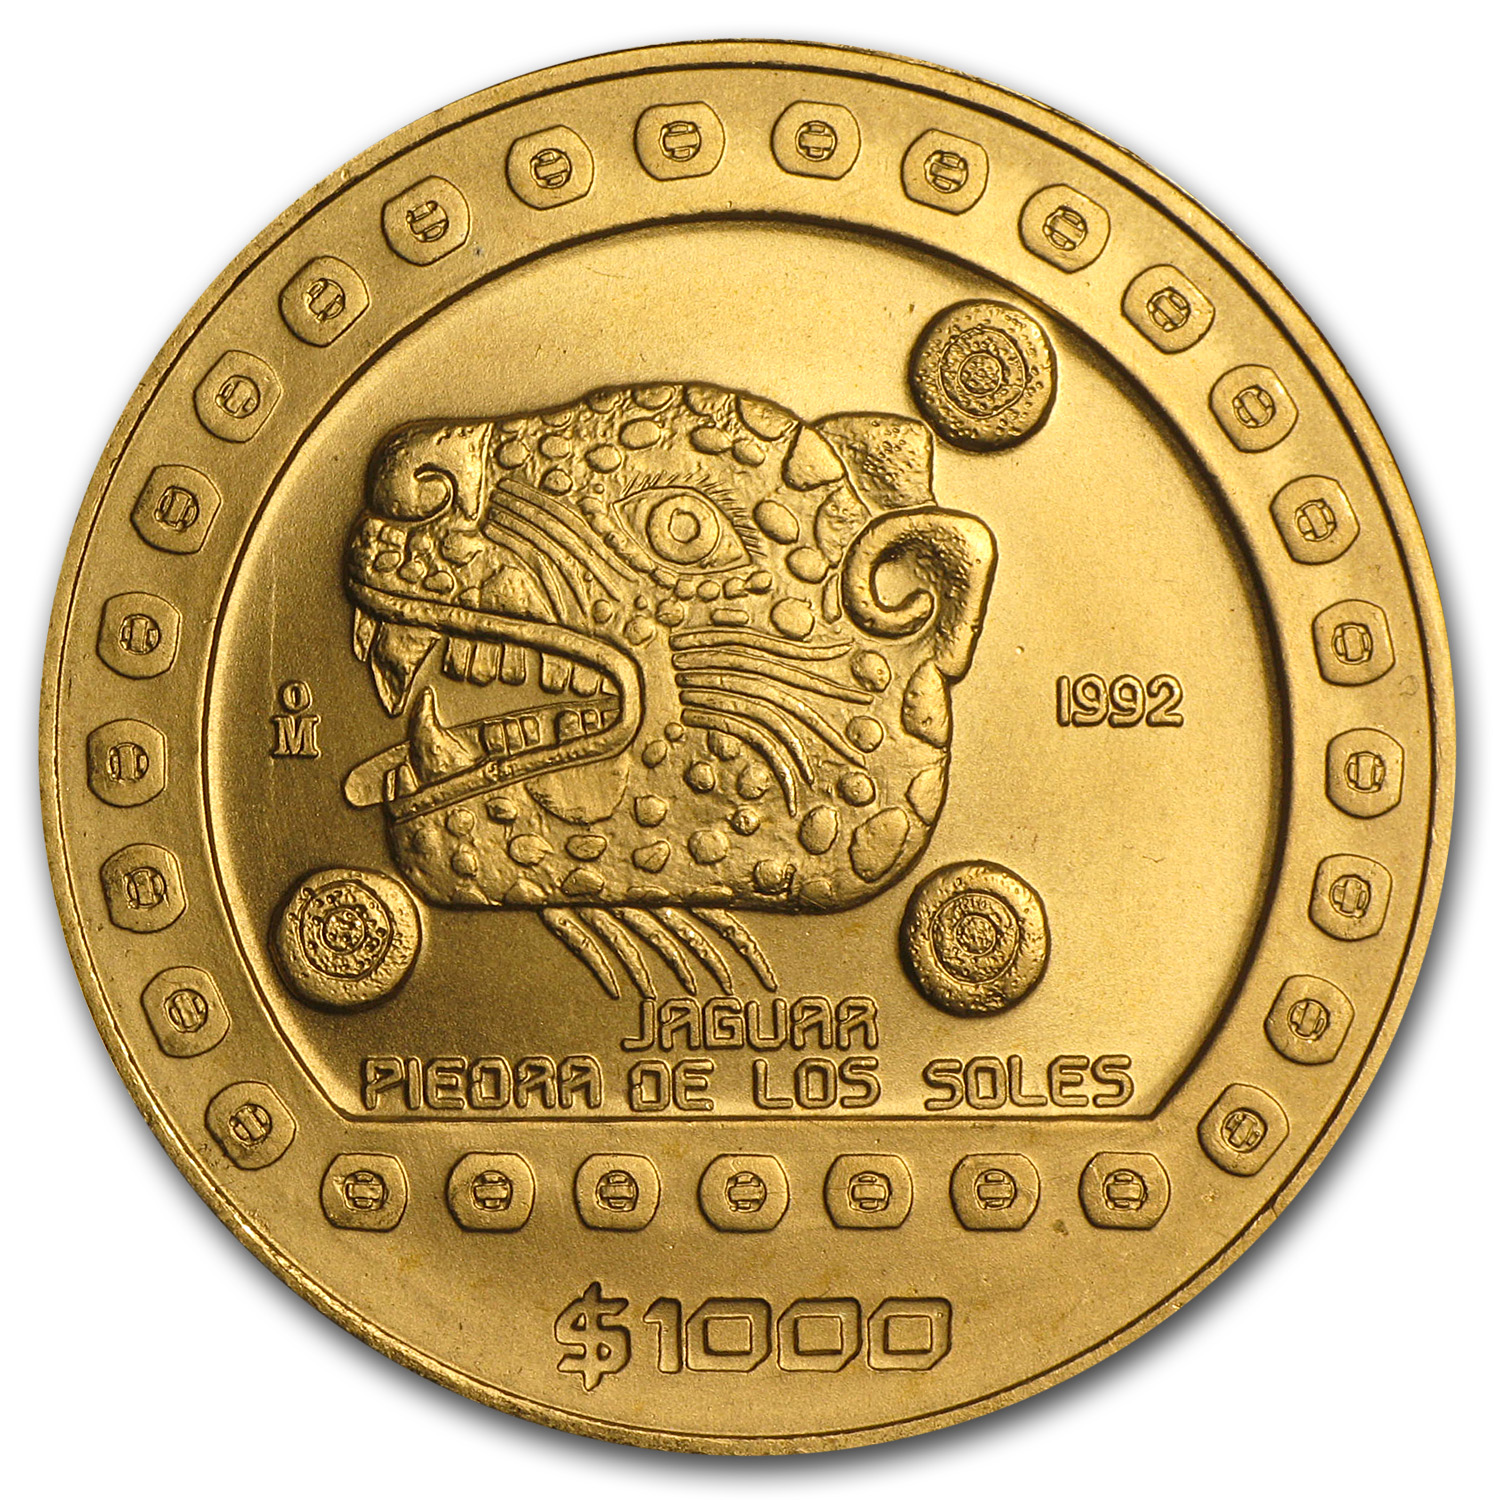 1992 Mexico Gold 100 Pesos Jaguar BU